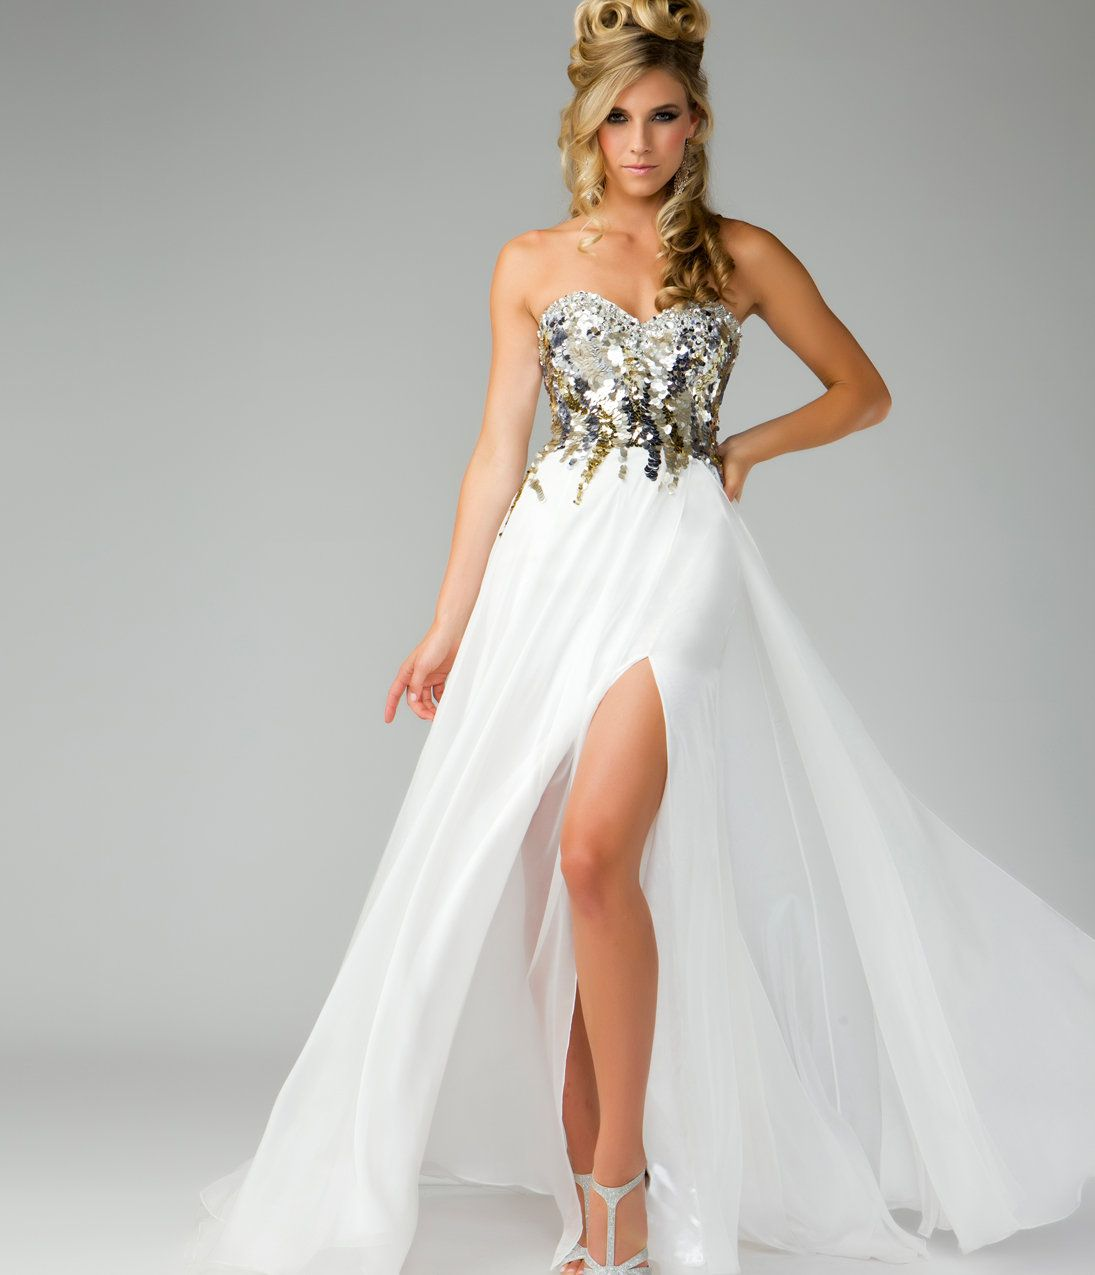 Mac Duggal Prom 2013- Gold Top Ivory Dress - Unique Vintage ...